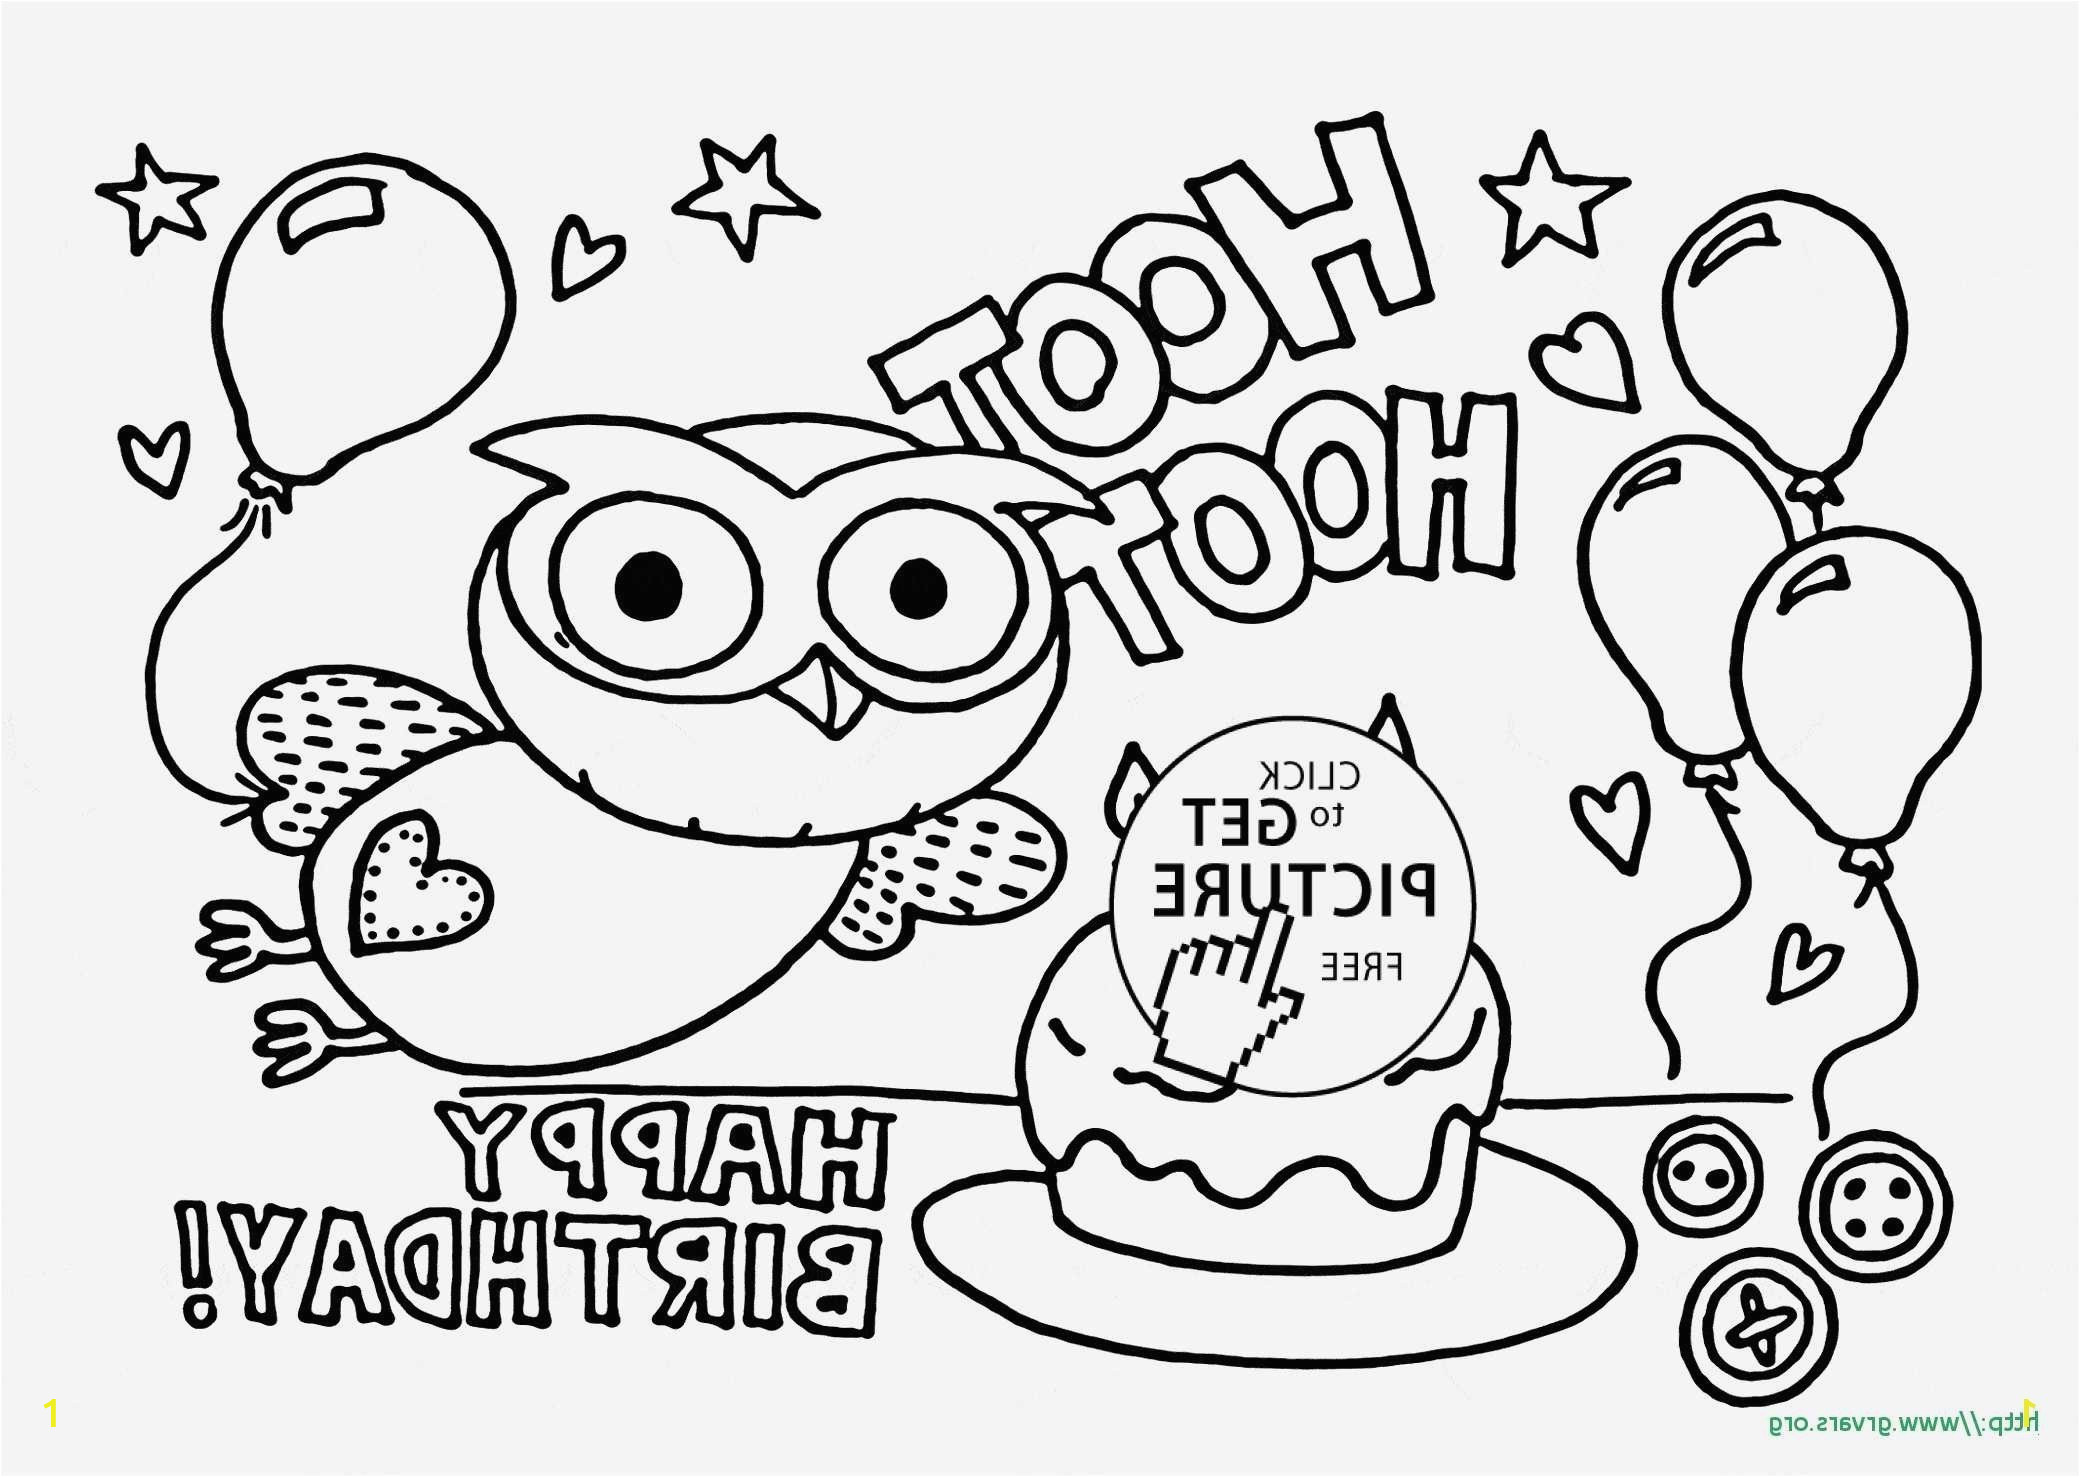 free cupcake coloring page cool stock beautiful birthday cake coloring sheet nocn of free cupcake coloring page